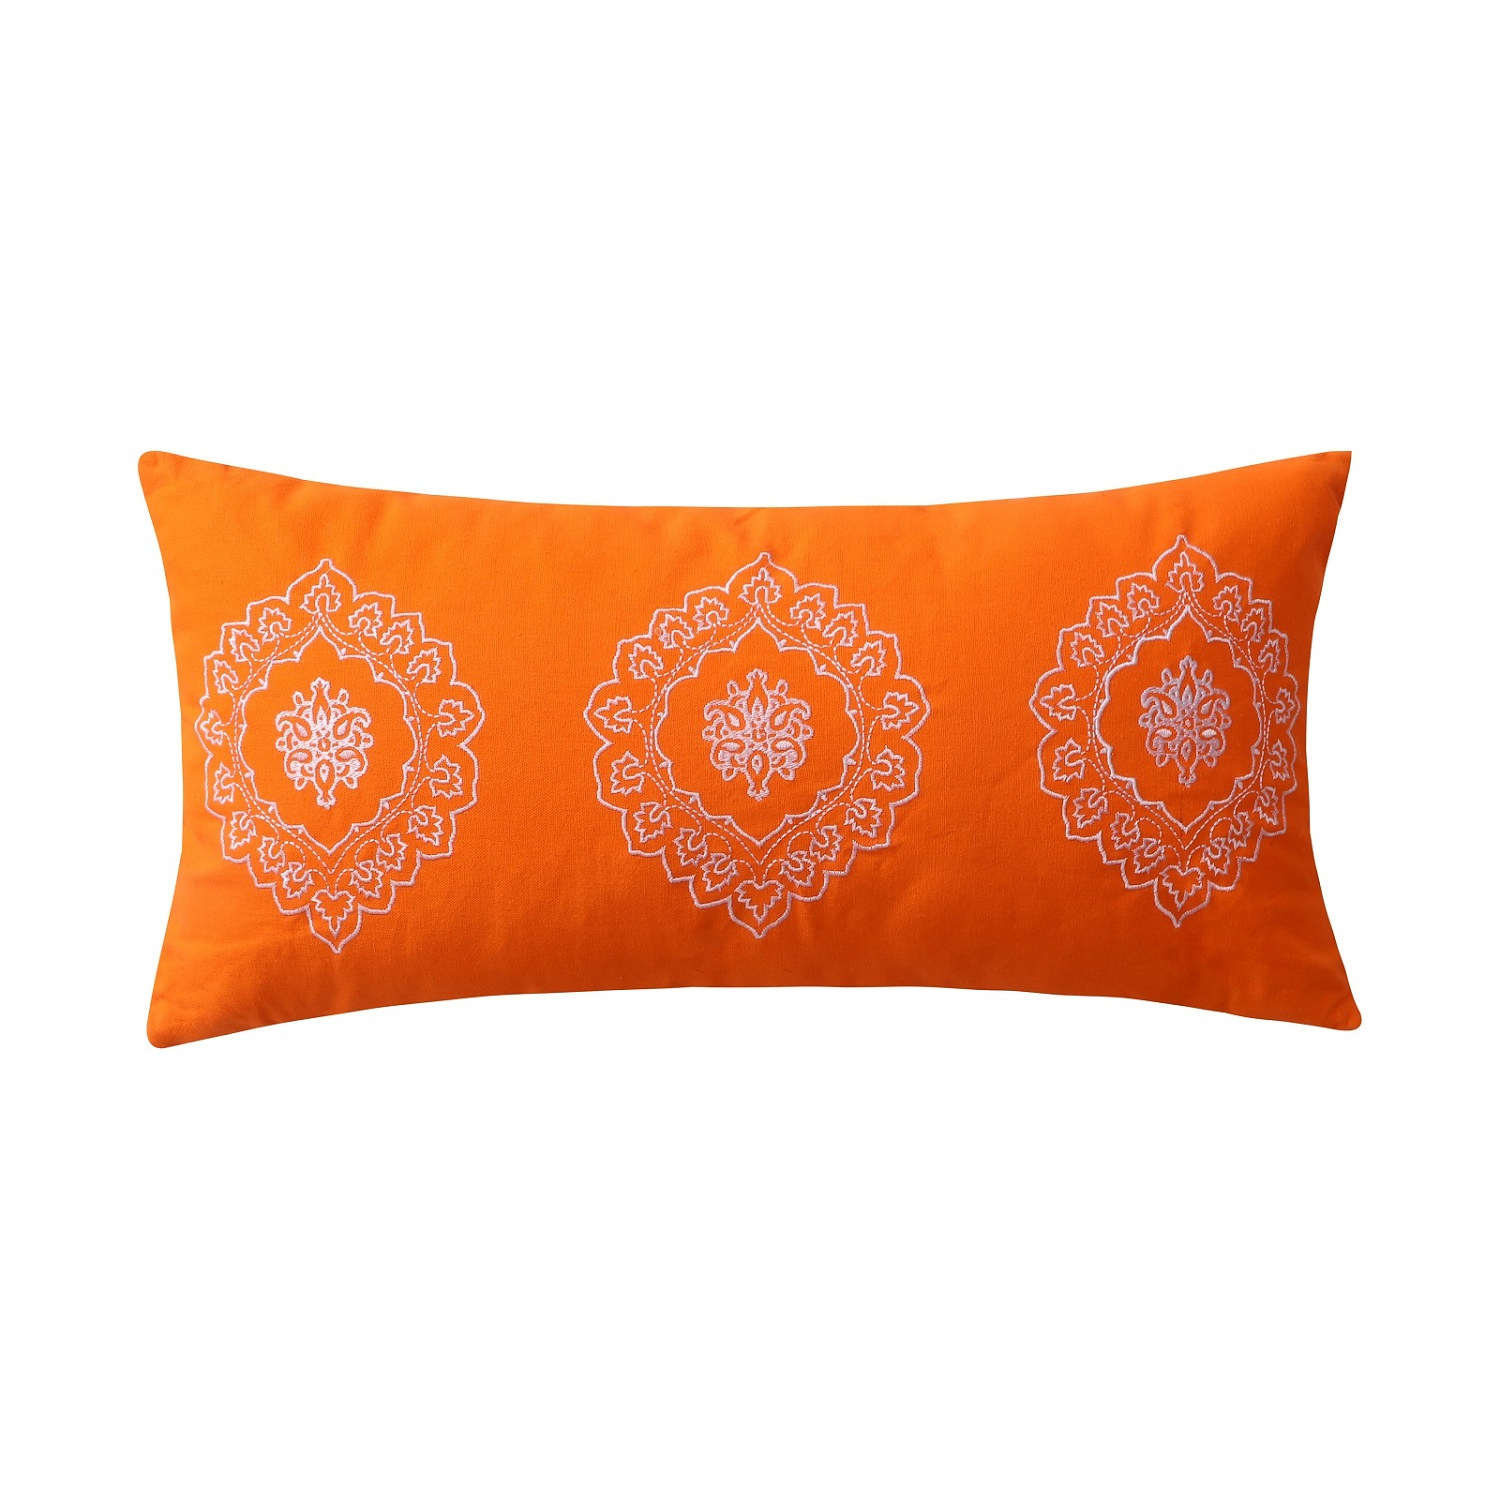 Medina  Saffron Accessory Neck Roll